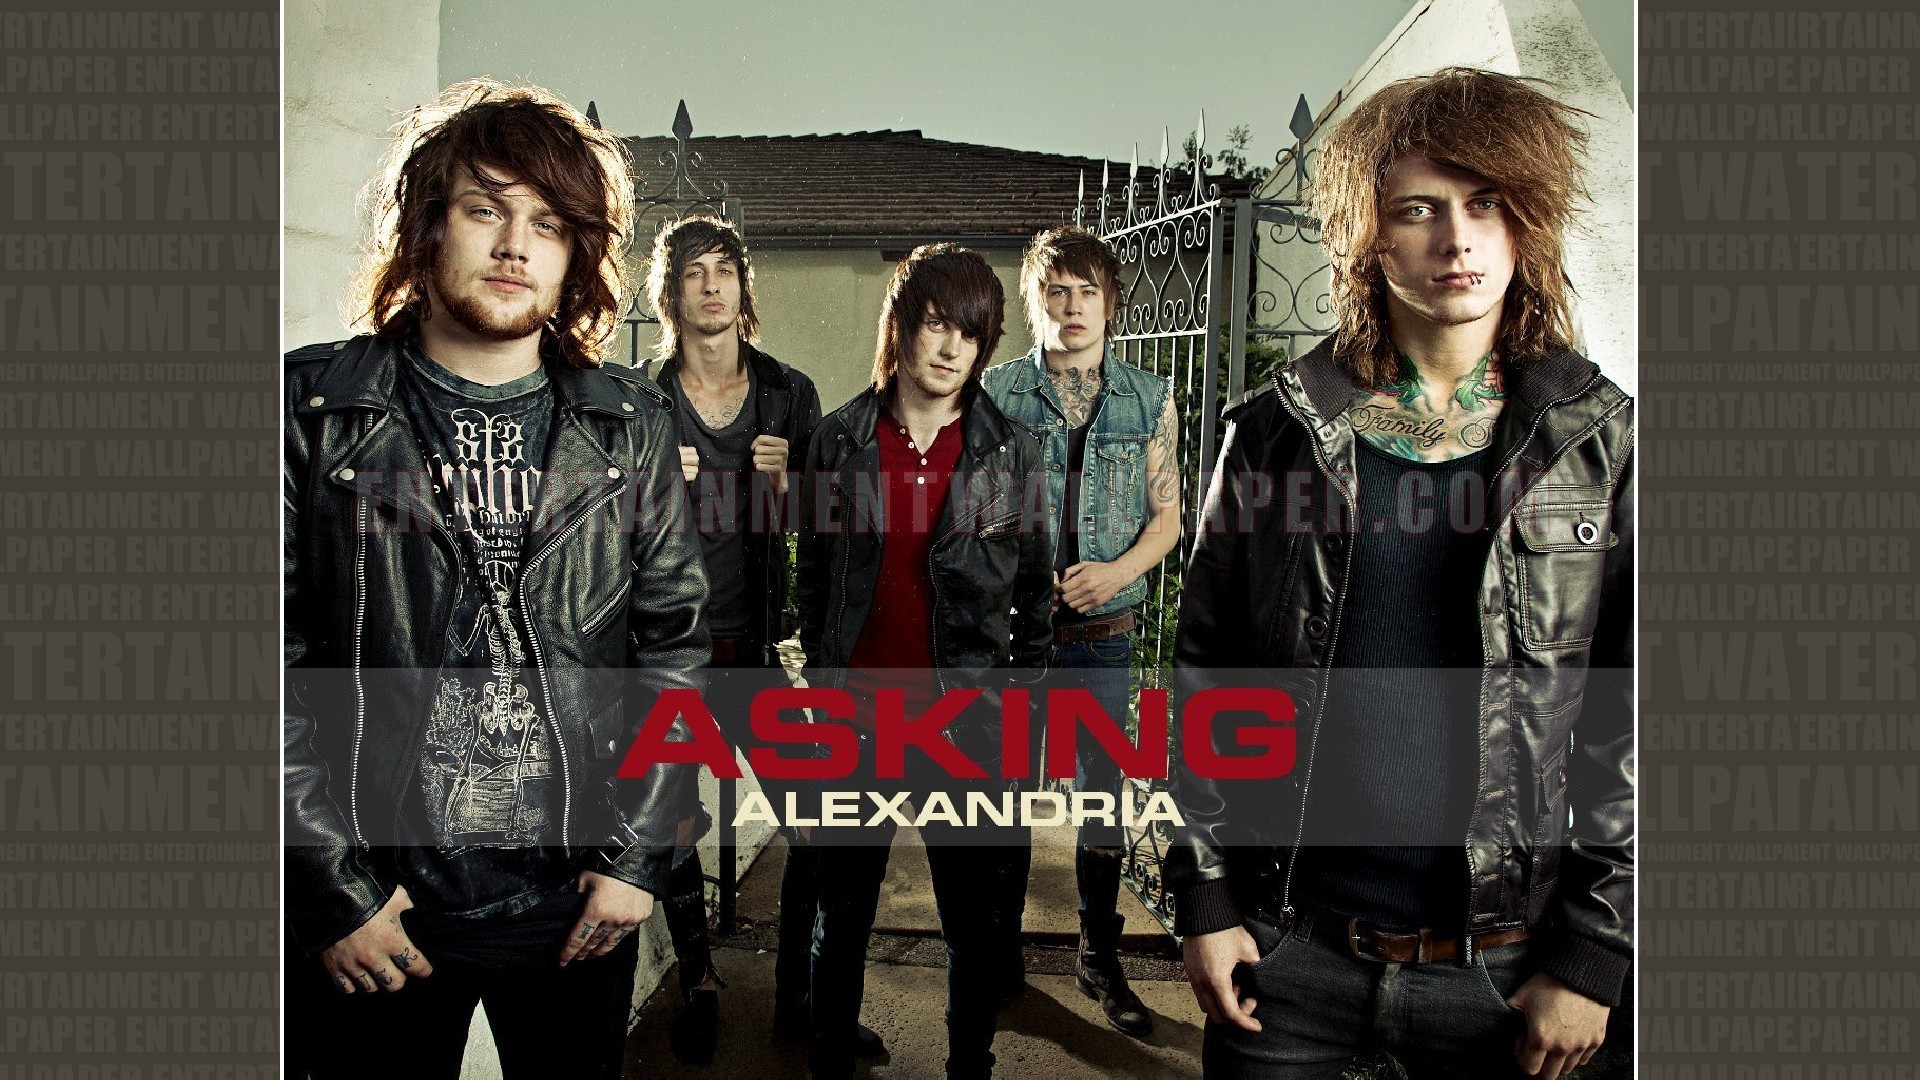 1920x1080  Asking Alexandria Wallpaper - Original size, download now.